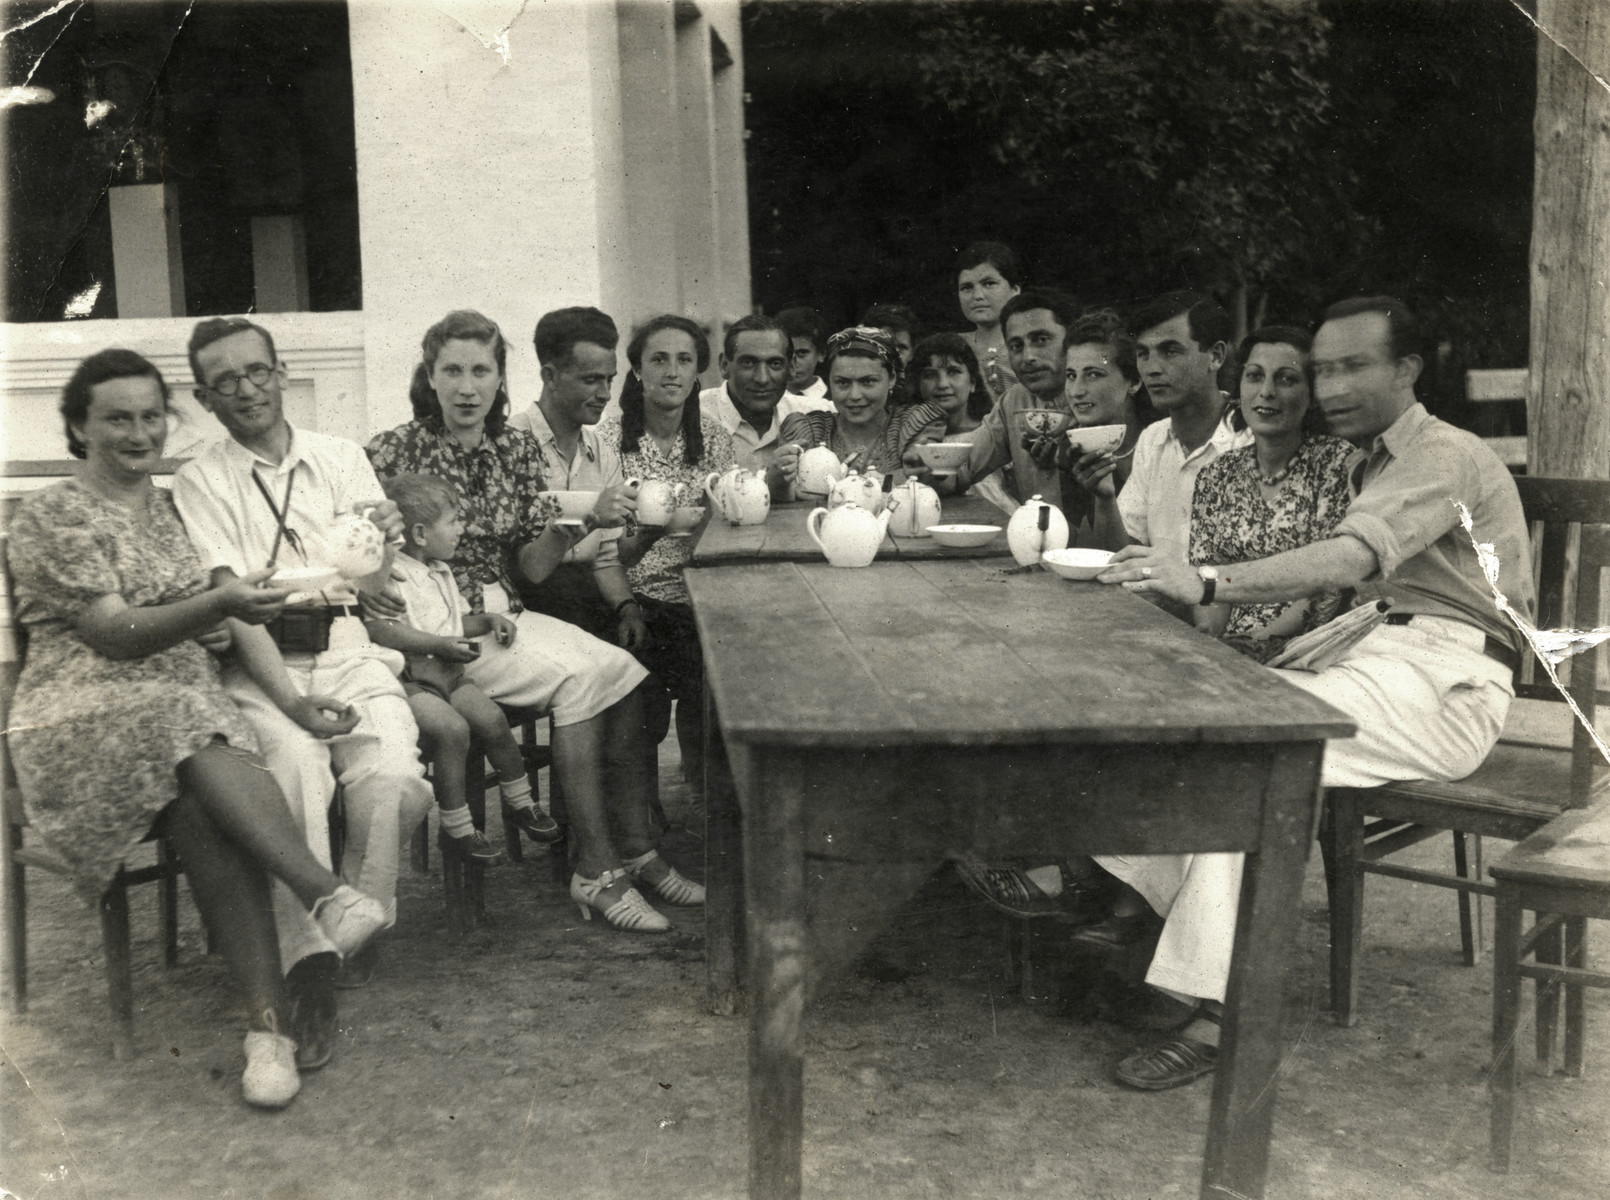 A group of Polish Jewish refugees and local friends enjoys a cup of tea at Chai Hana.   From left, Lonya Amster, Israel Greenbaum, Rywka (donor's mother) hugging Benjamin, Mr. and Mrs. Goldberg, Jonas Markowicz  (donor's father) and other Uzbeki and Jewish refugee friends.